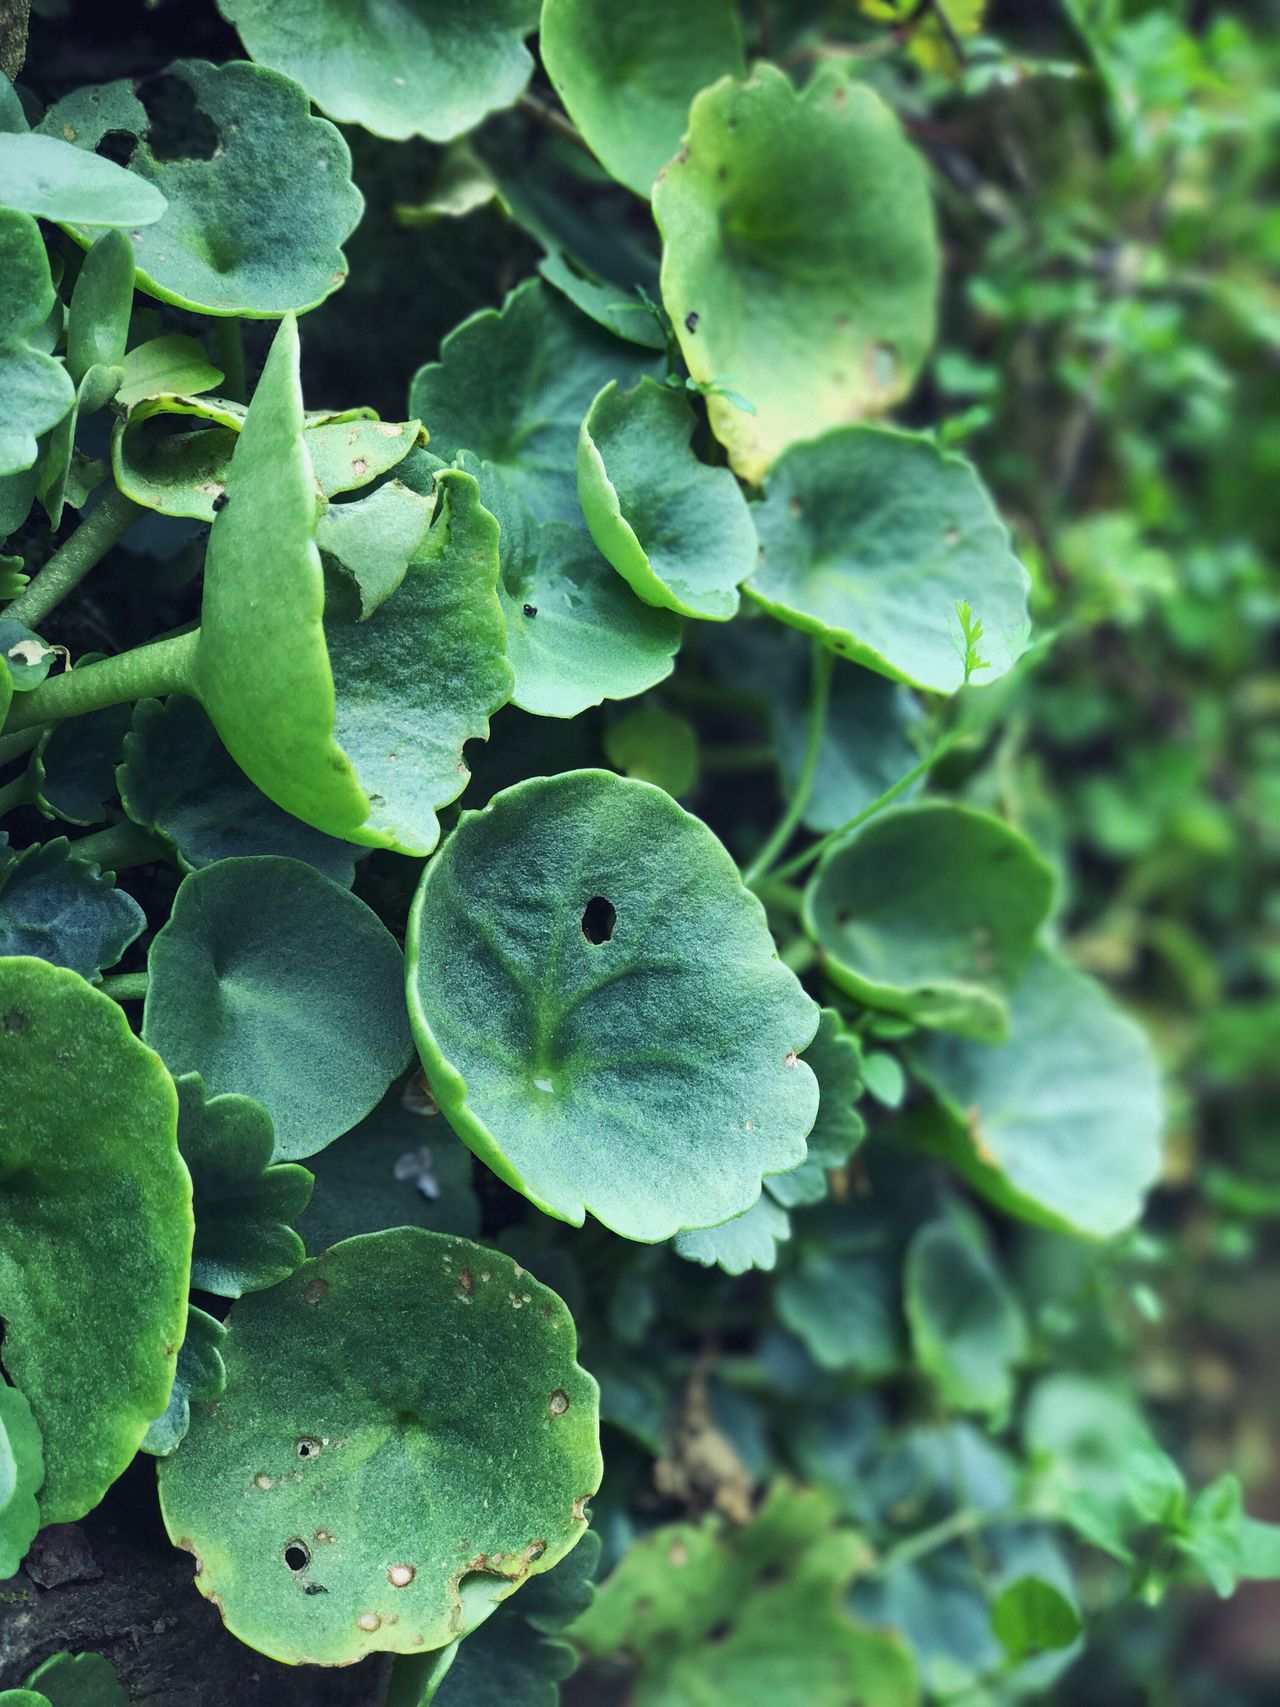 Green Color Leaf Growth Nature Plant No People Outdoors Day Close-up Animal Themes Freshness Beauty In Nature